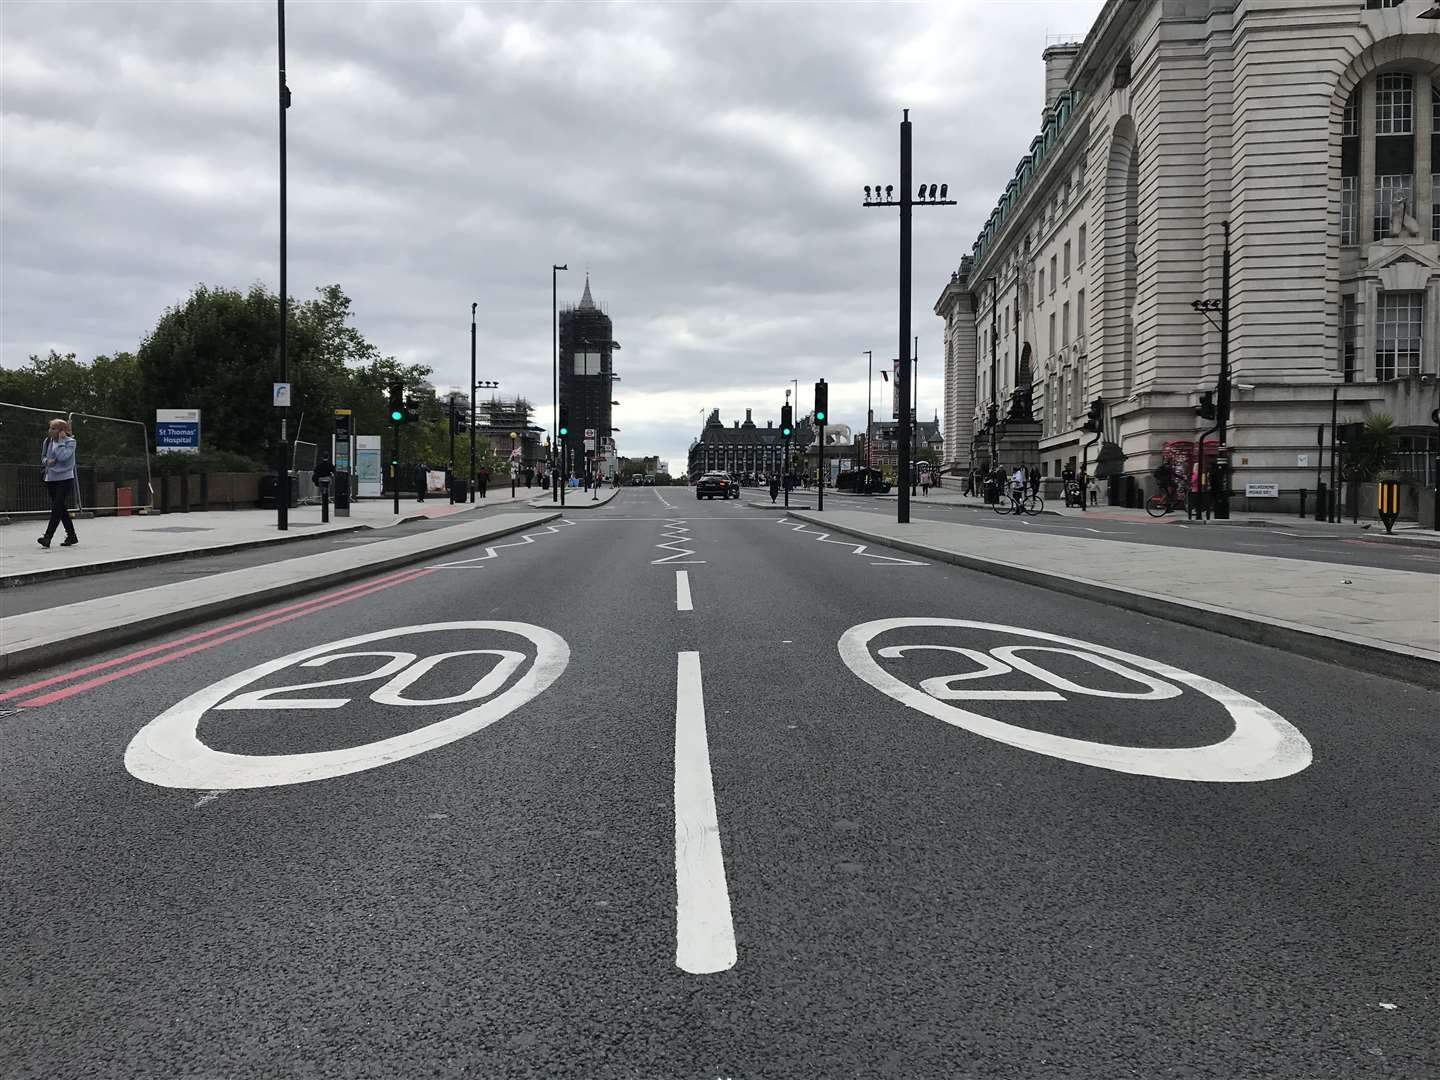 The 20mph limit on Westminster Bridge in London